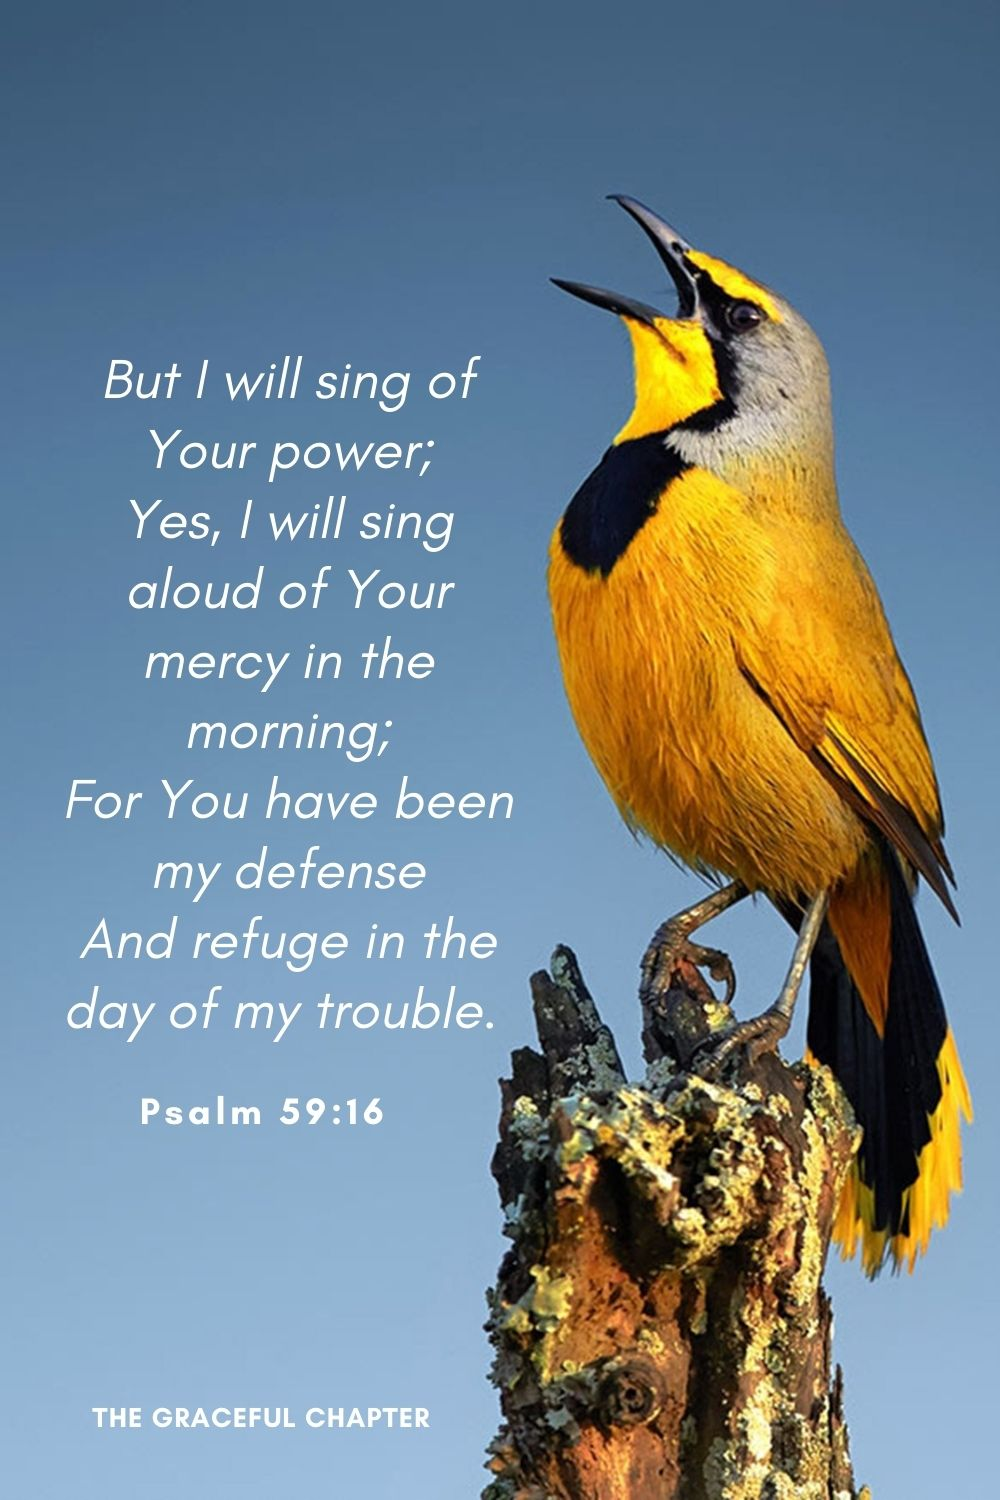 But I will sing of Your power; Yes, I will sing aloud of Your mercy in the morning; For You have been my defense And refuge in the day of my trouble.Psalm 59:16